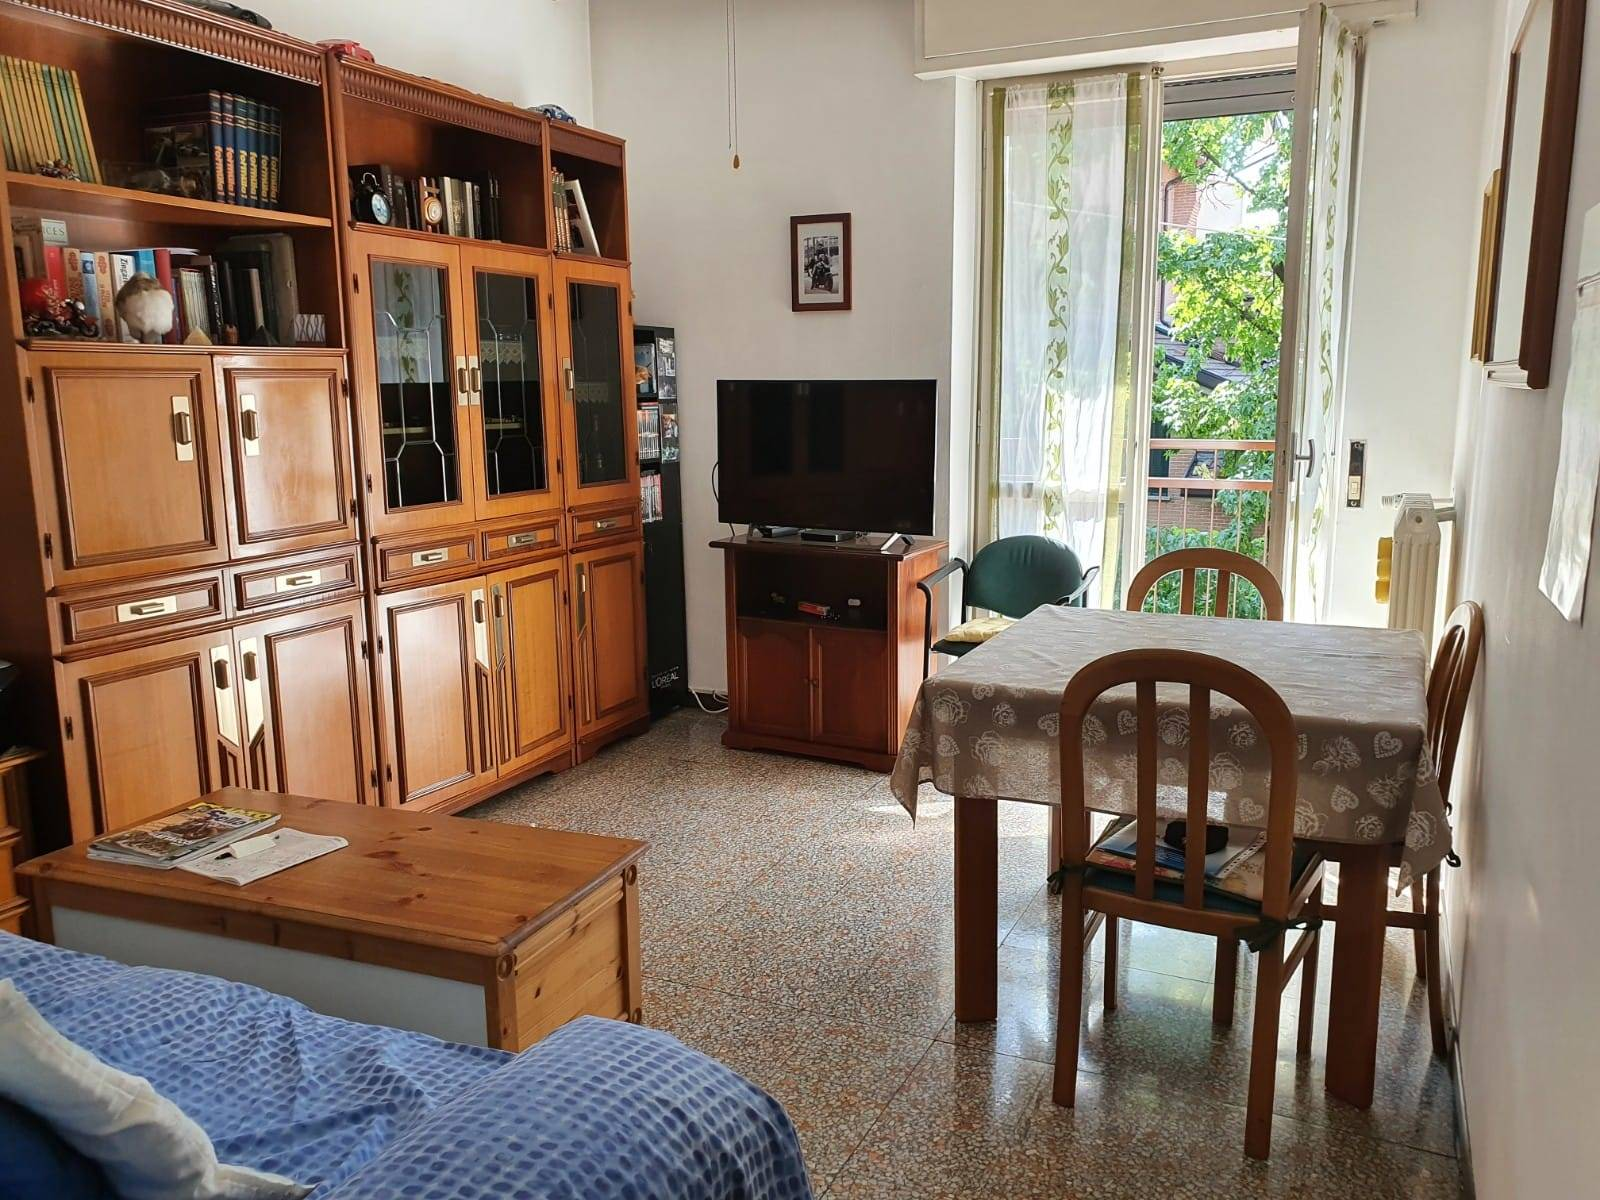 CINISELLO BALSAMO, Apartment for sale, Habitable, Heating Centralized, Energetic class: G, Epi: 182,34 kwh/m2 year, placed at 1° on 4, composed by: 2